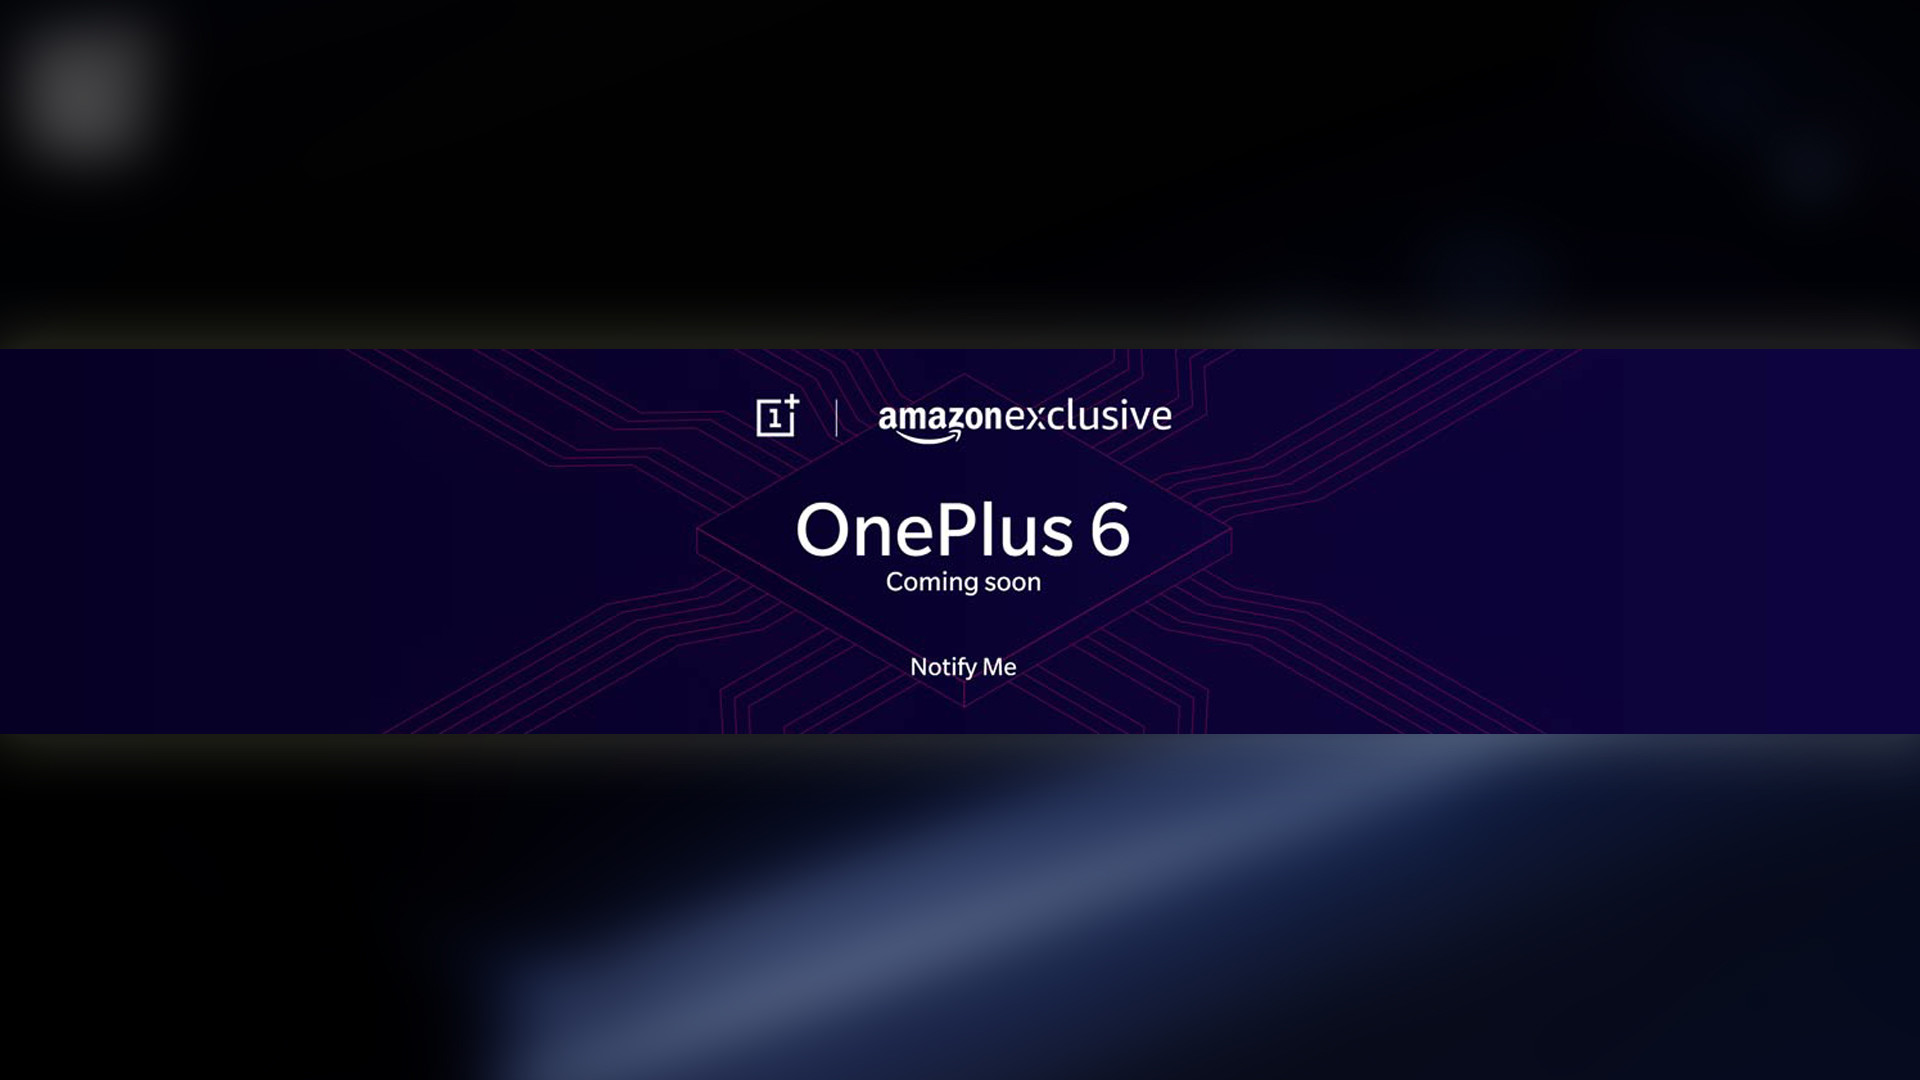 OnePlus 6 with Ceramic Back Panel Teased Ahead of its Official launch